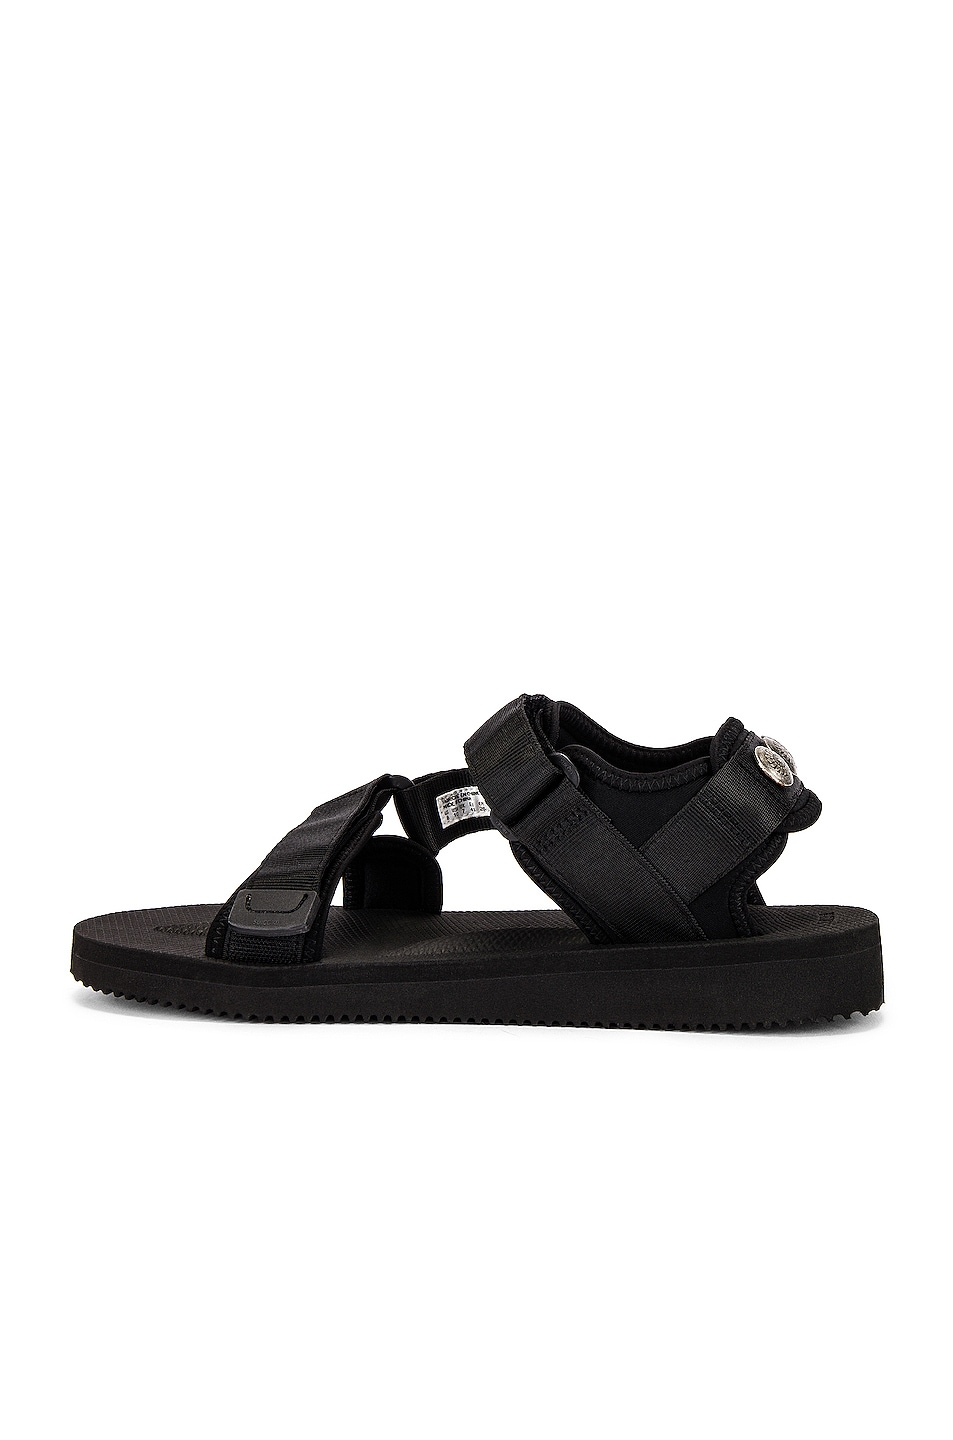 Image 5 of JOHN ELLIOTT x Blackmeans x Suicoke Lotus Sandal in Black